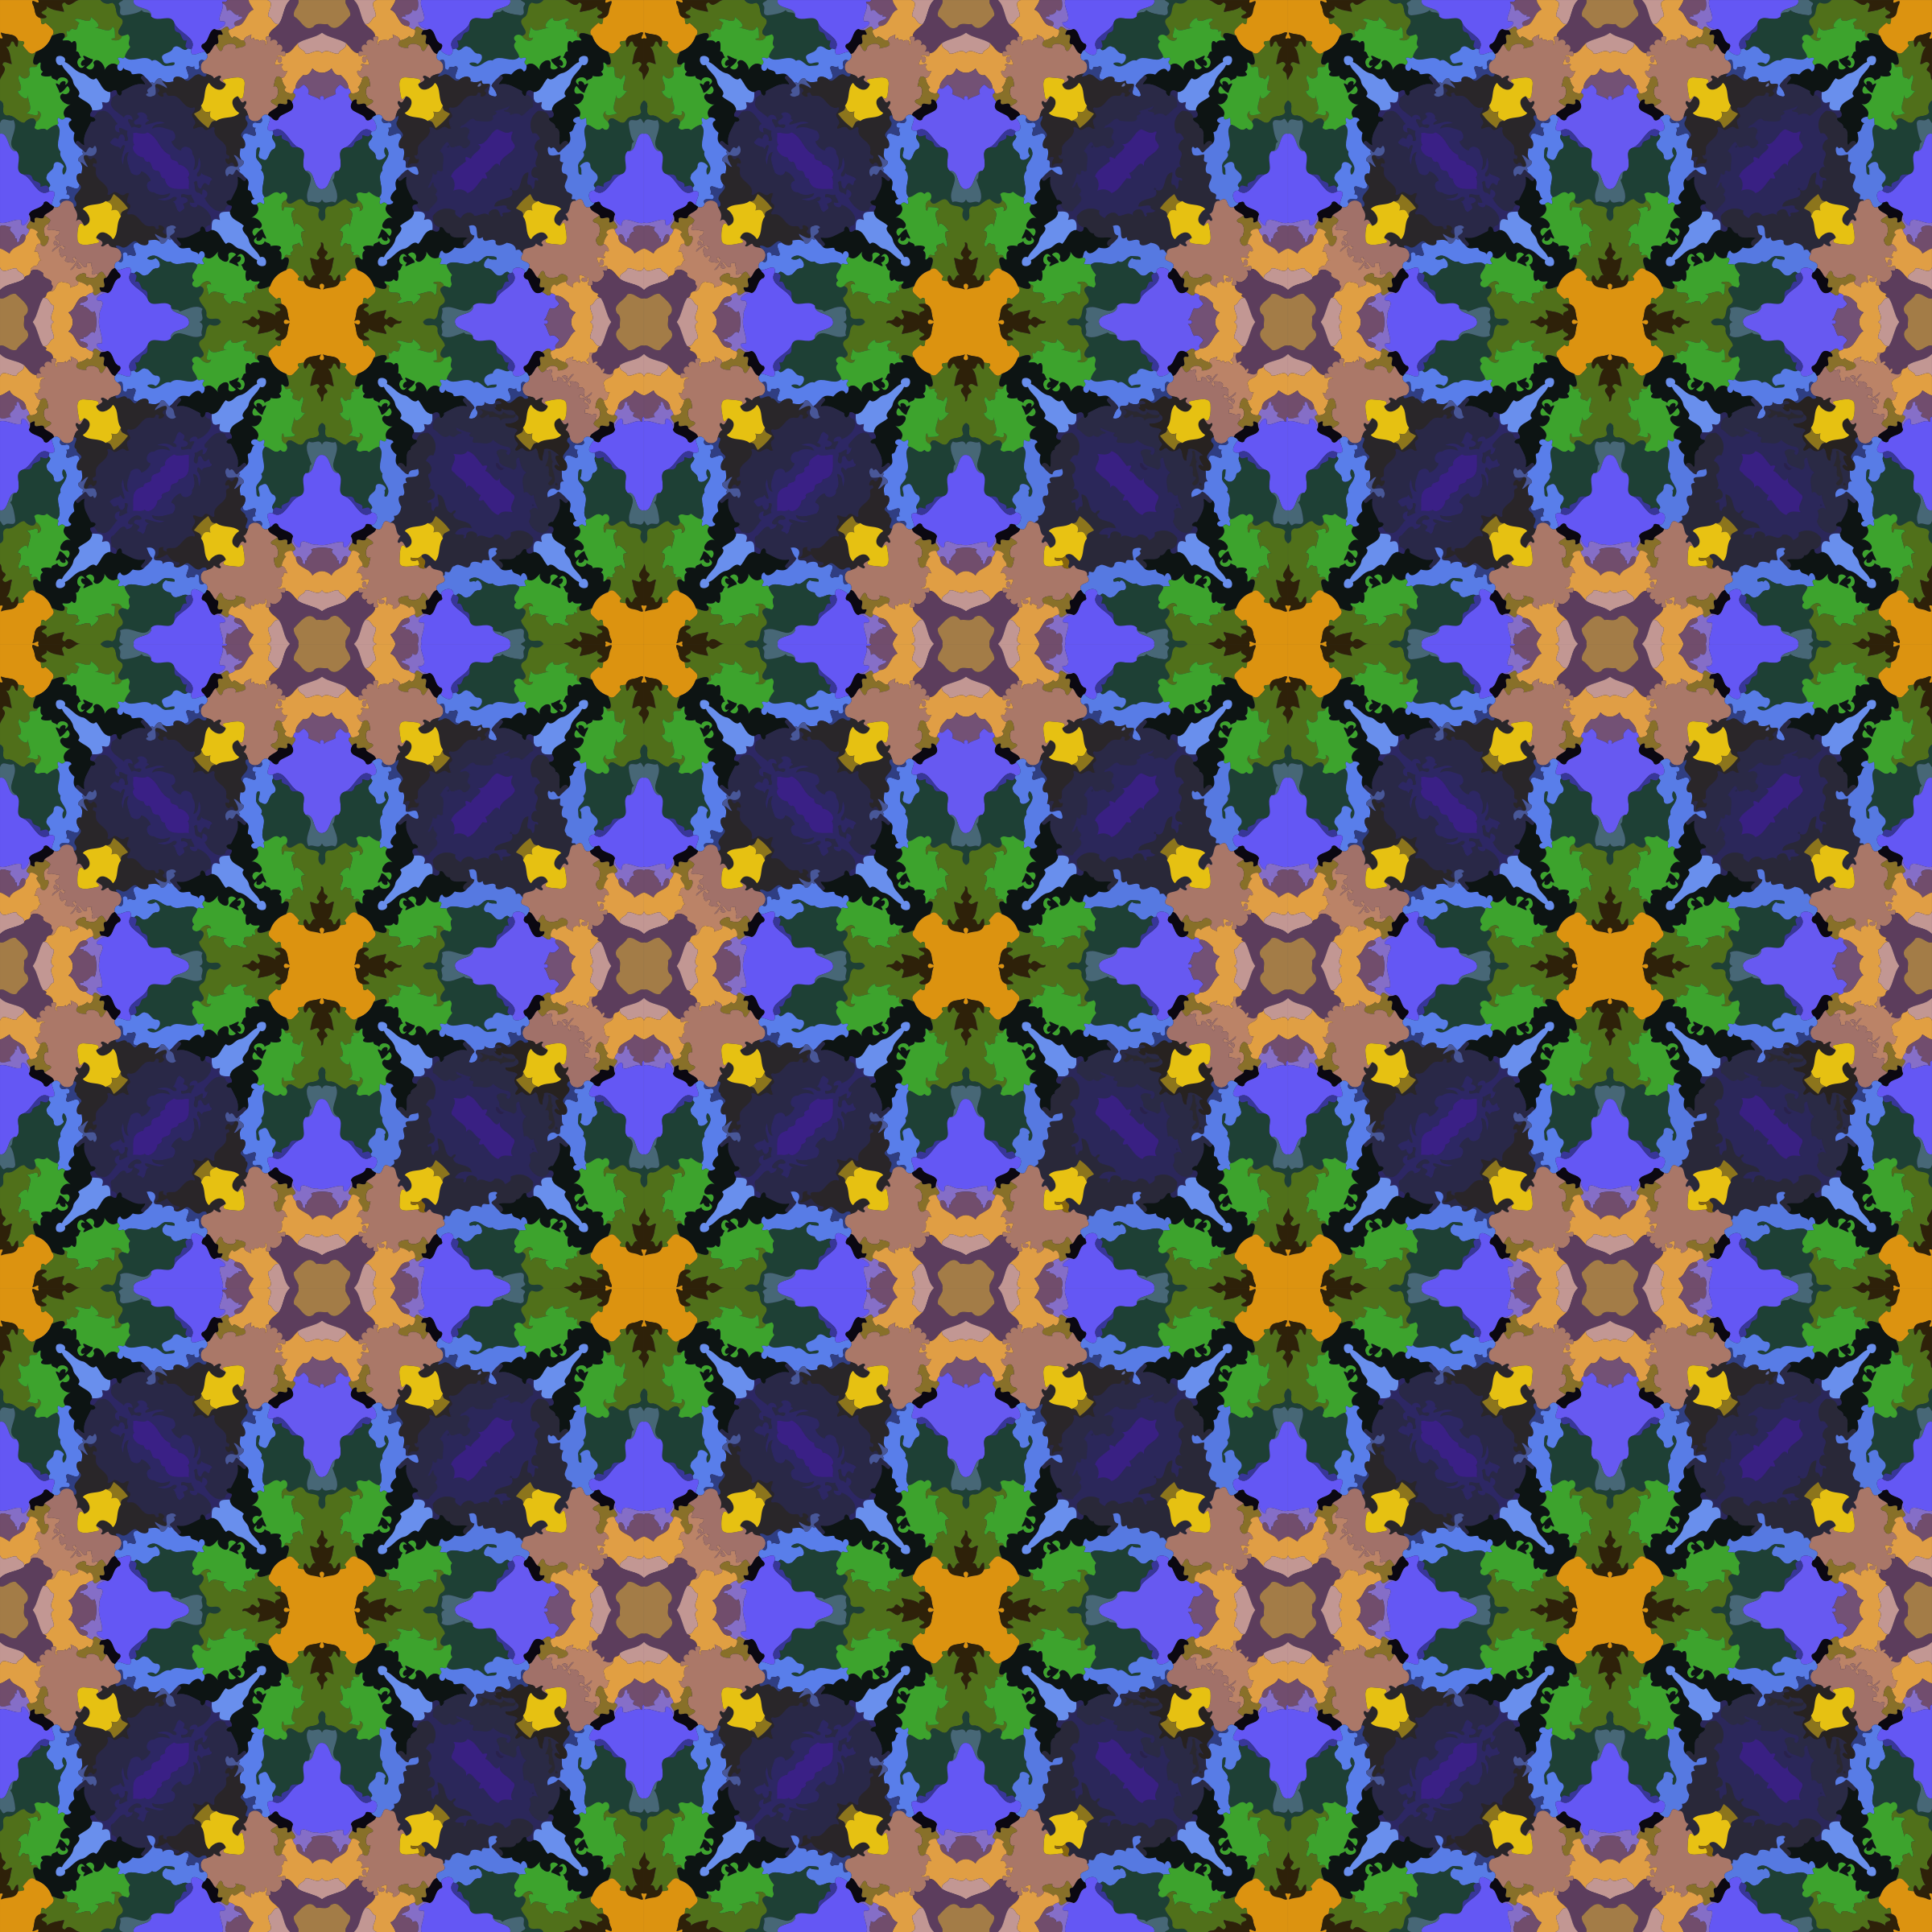 Background pattern 224 (colour 4) by Firkin